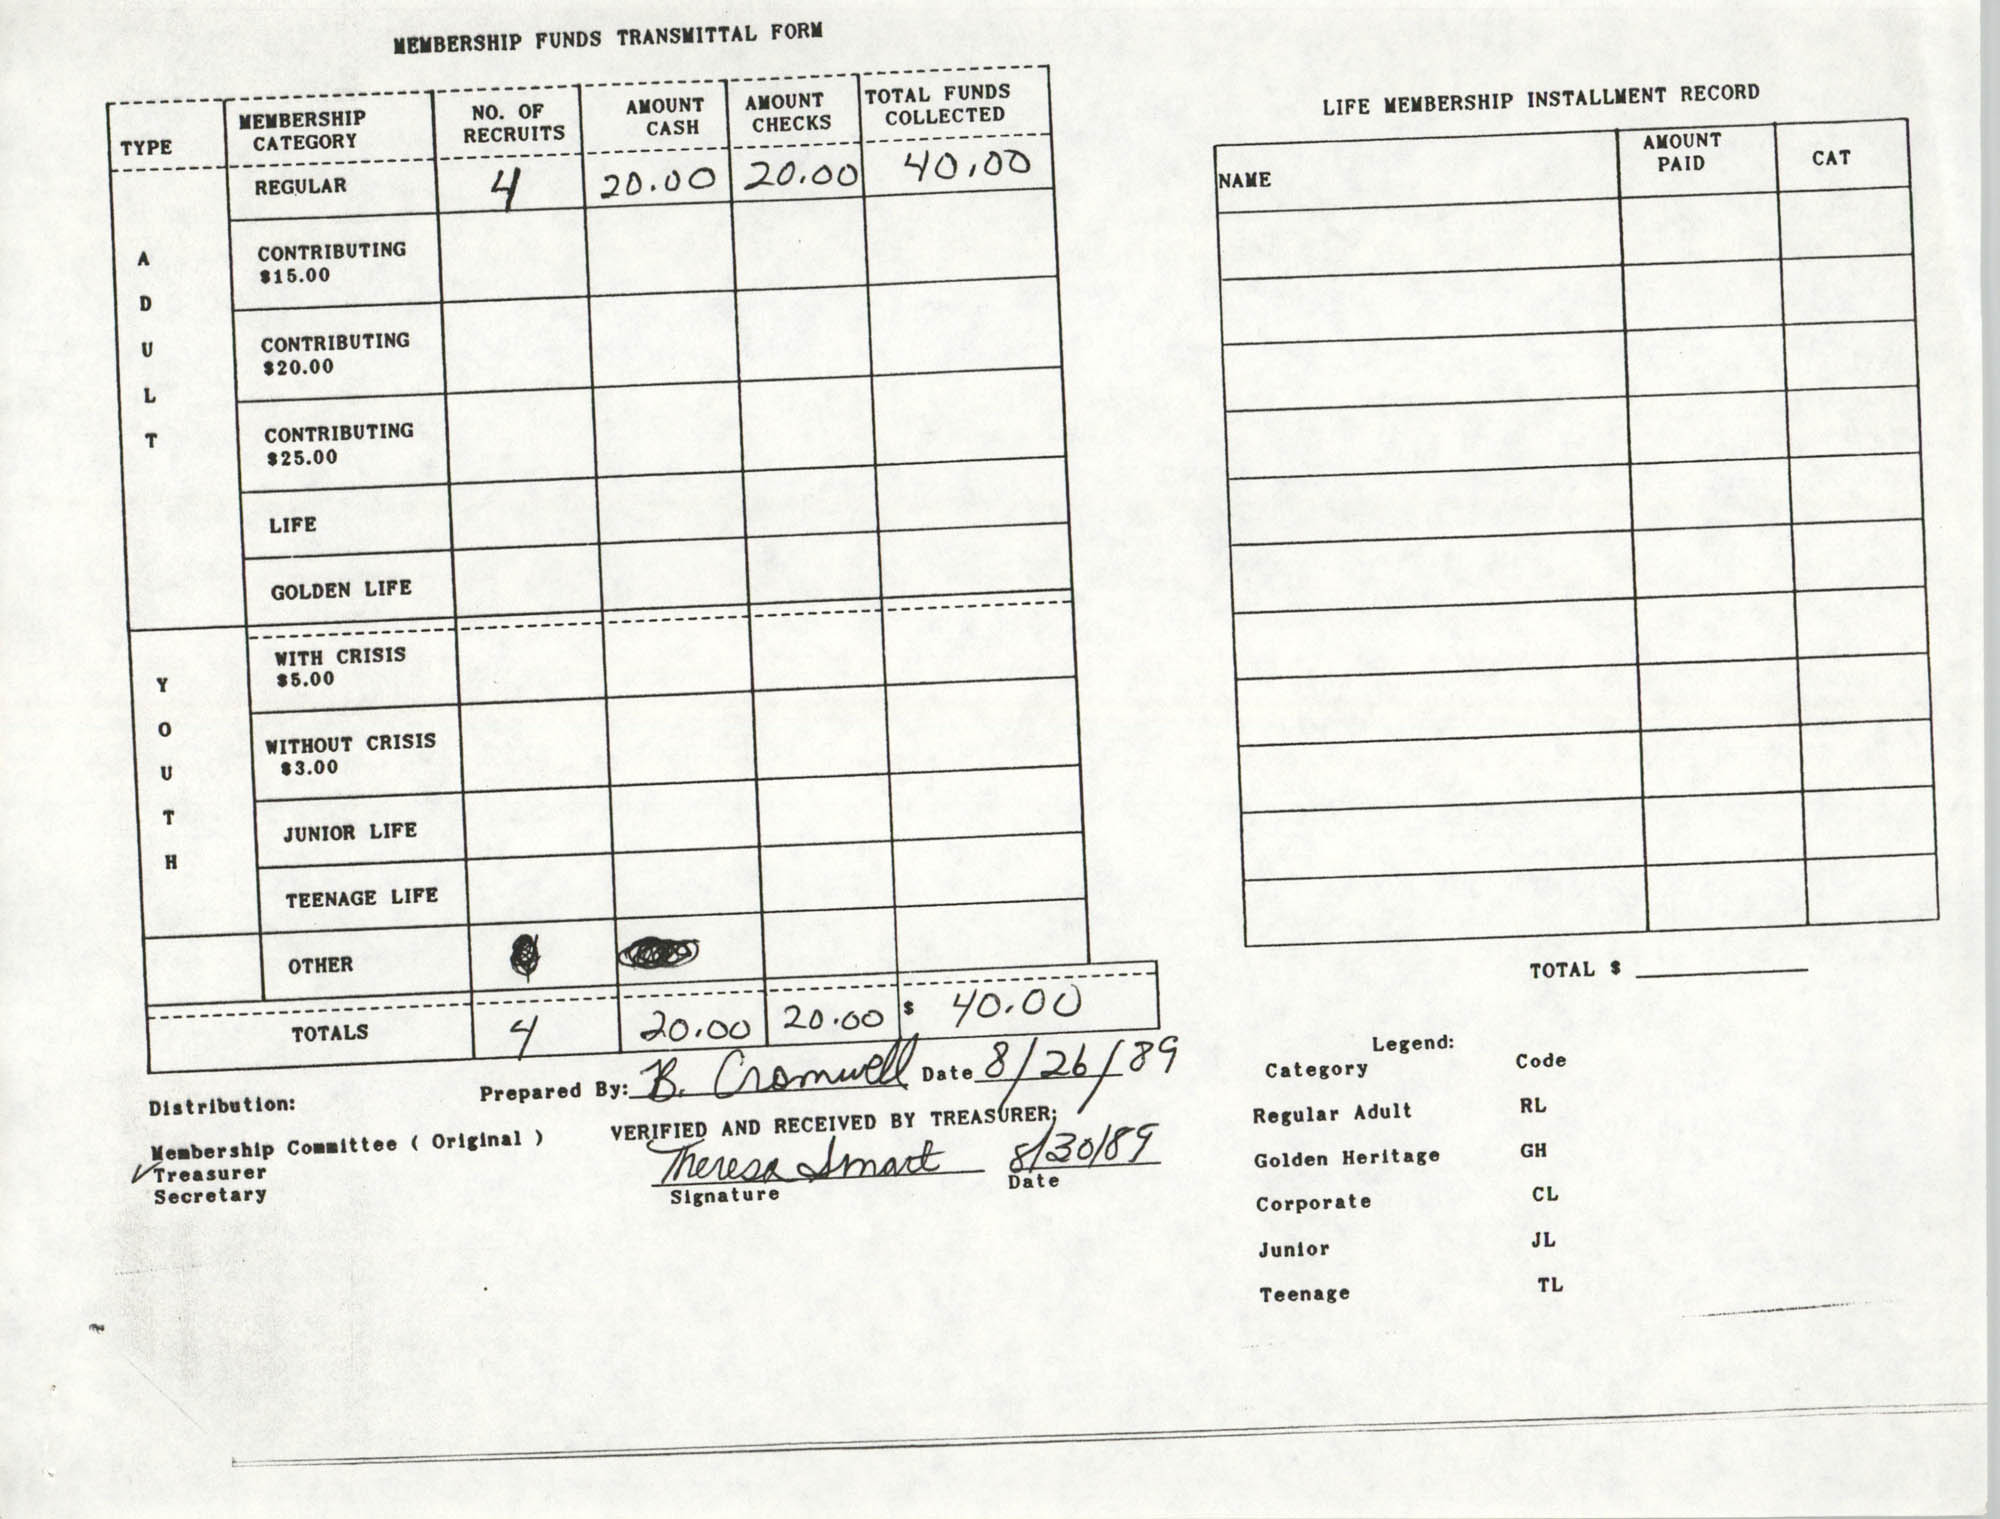 Charleston Branch of the NAACP Funds Transmittal Forms, August 1989, Page 3